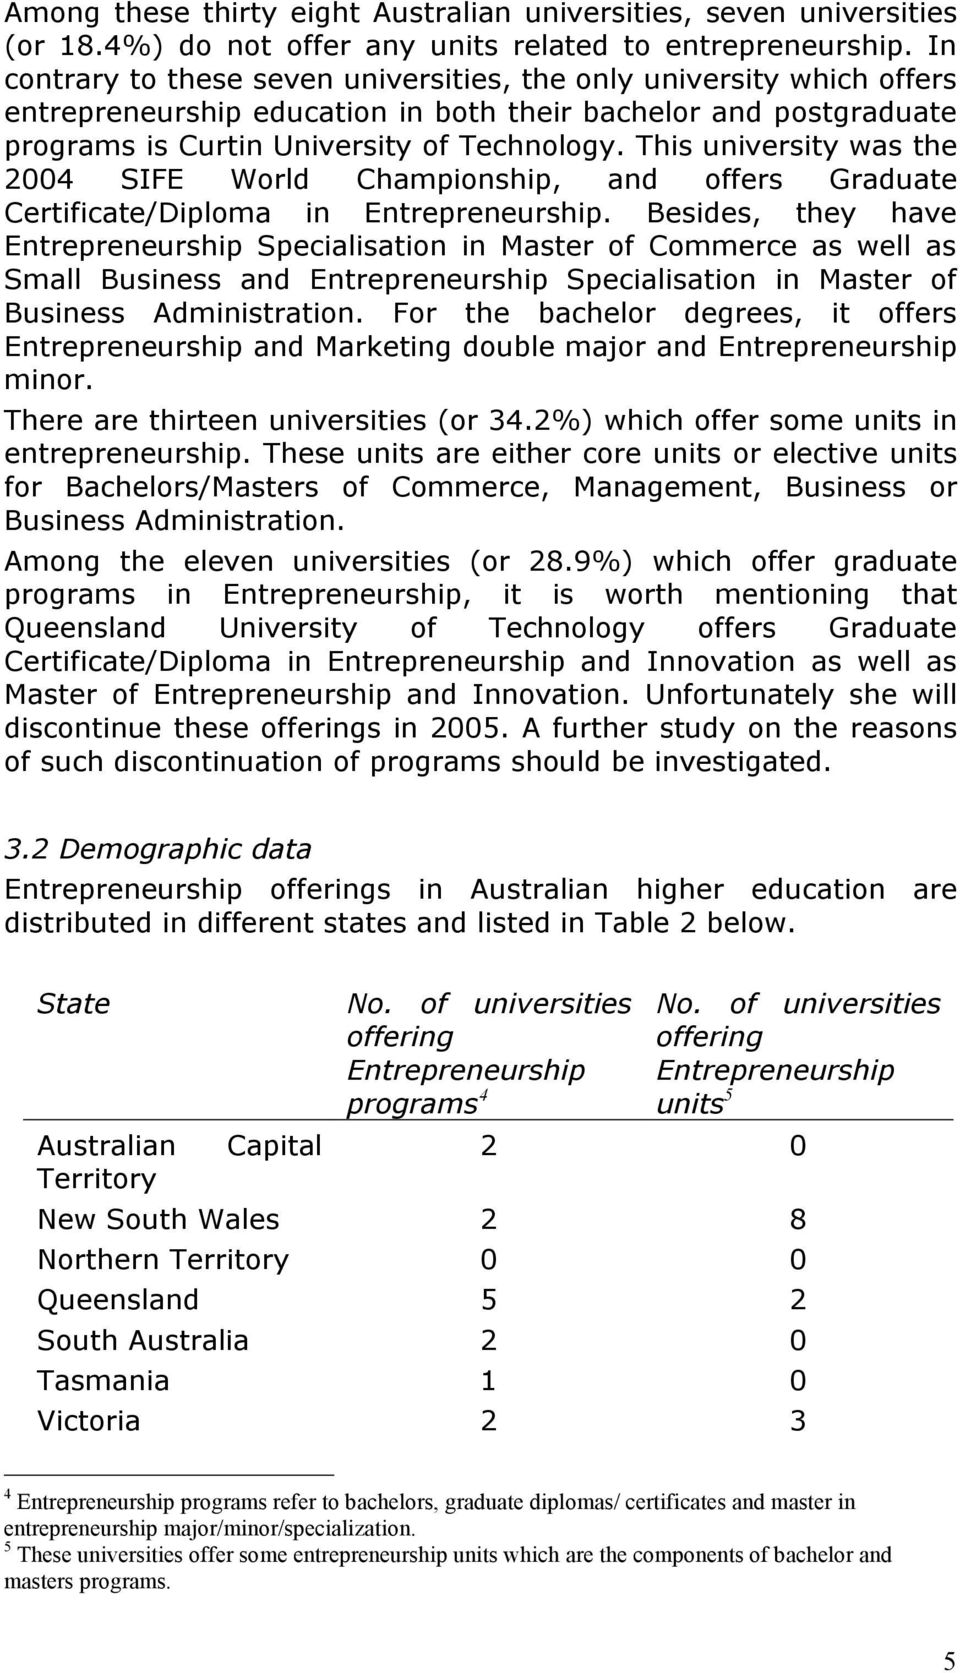 This university was the 2004 SIFE World Championship, and offers Graduate Certificate/Diploma in Entrepreneurship.